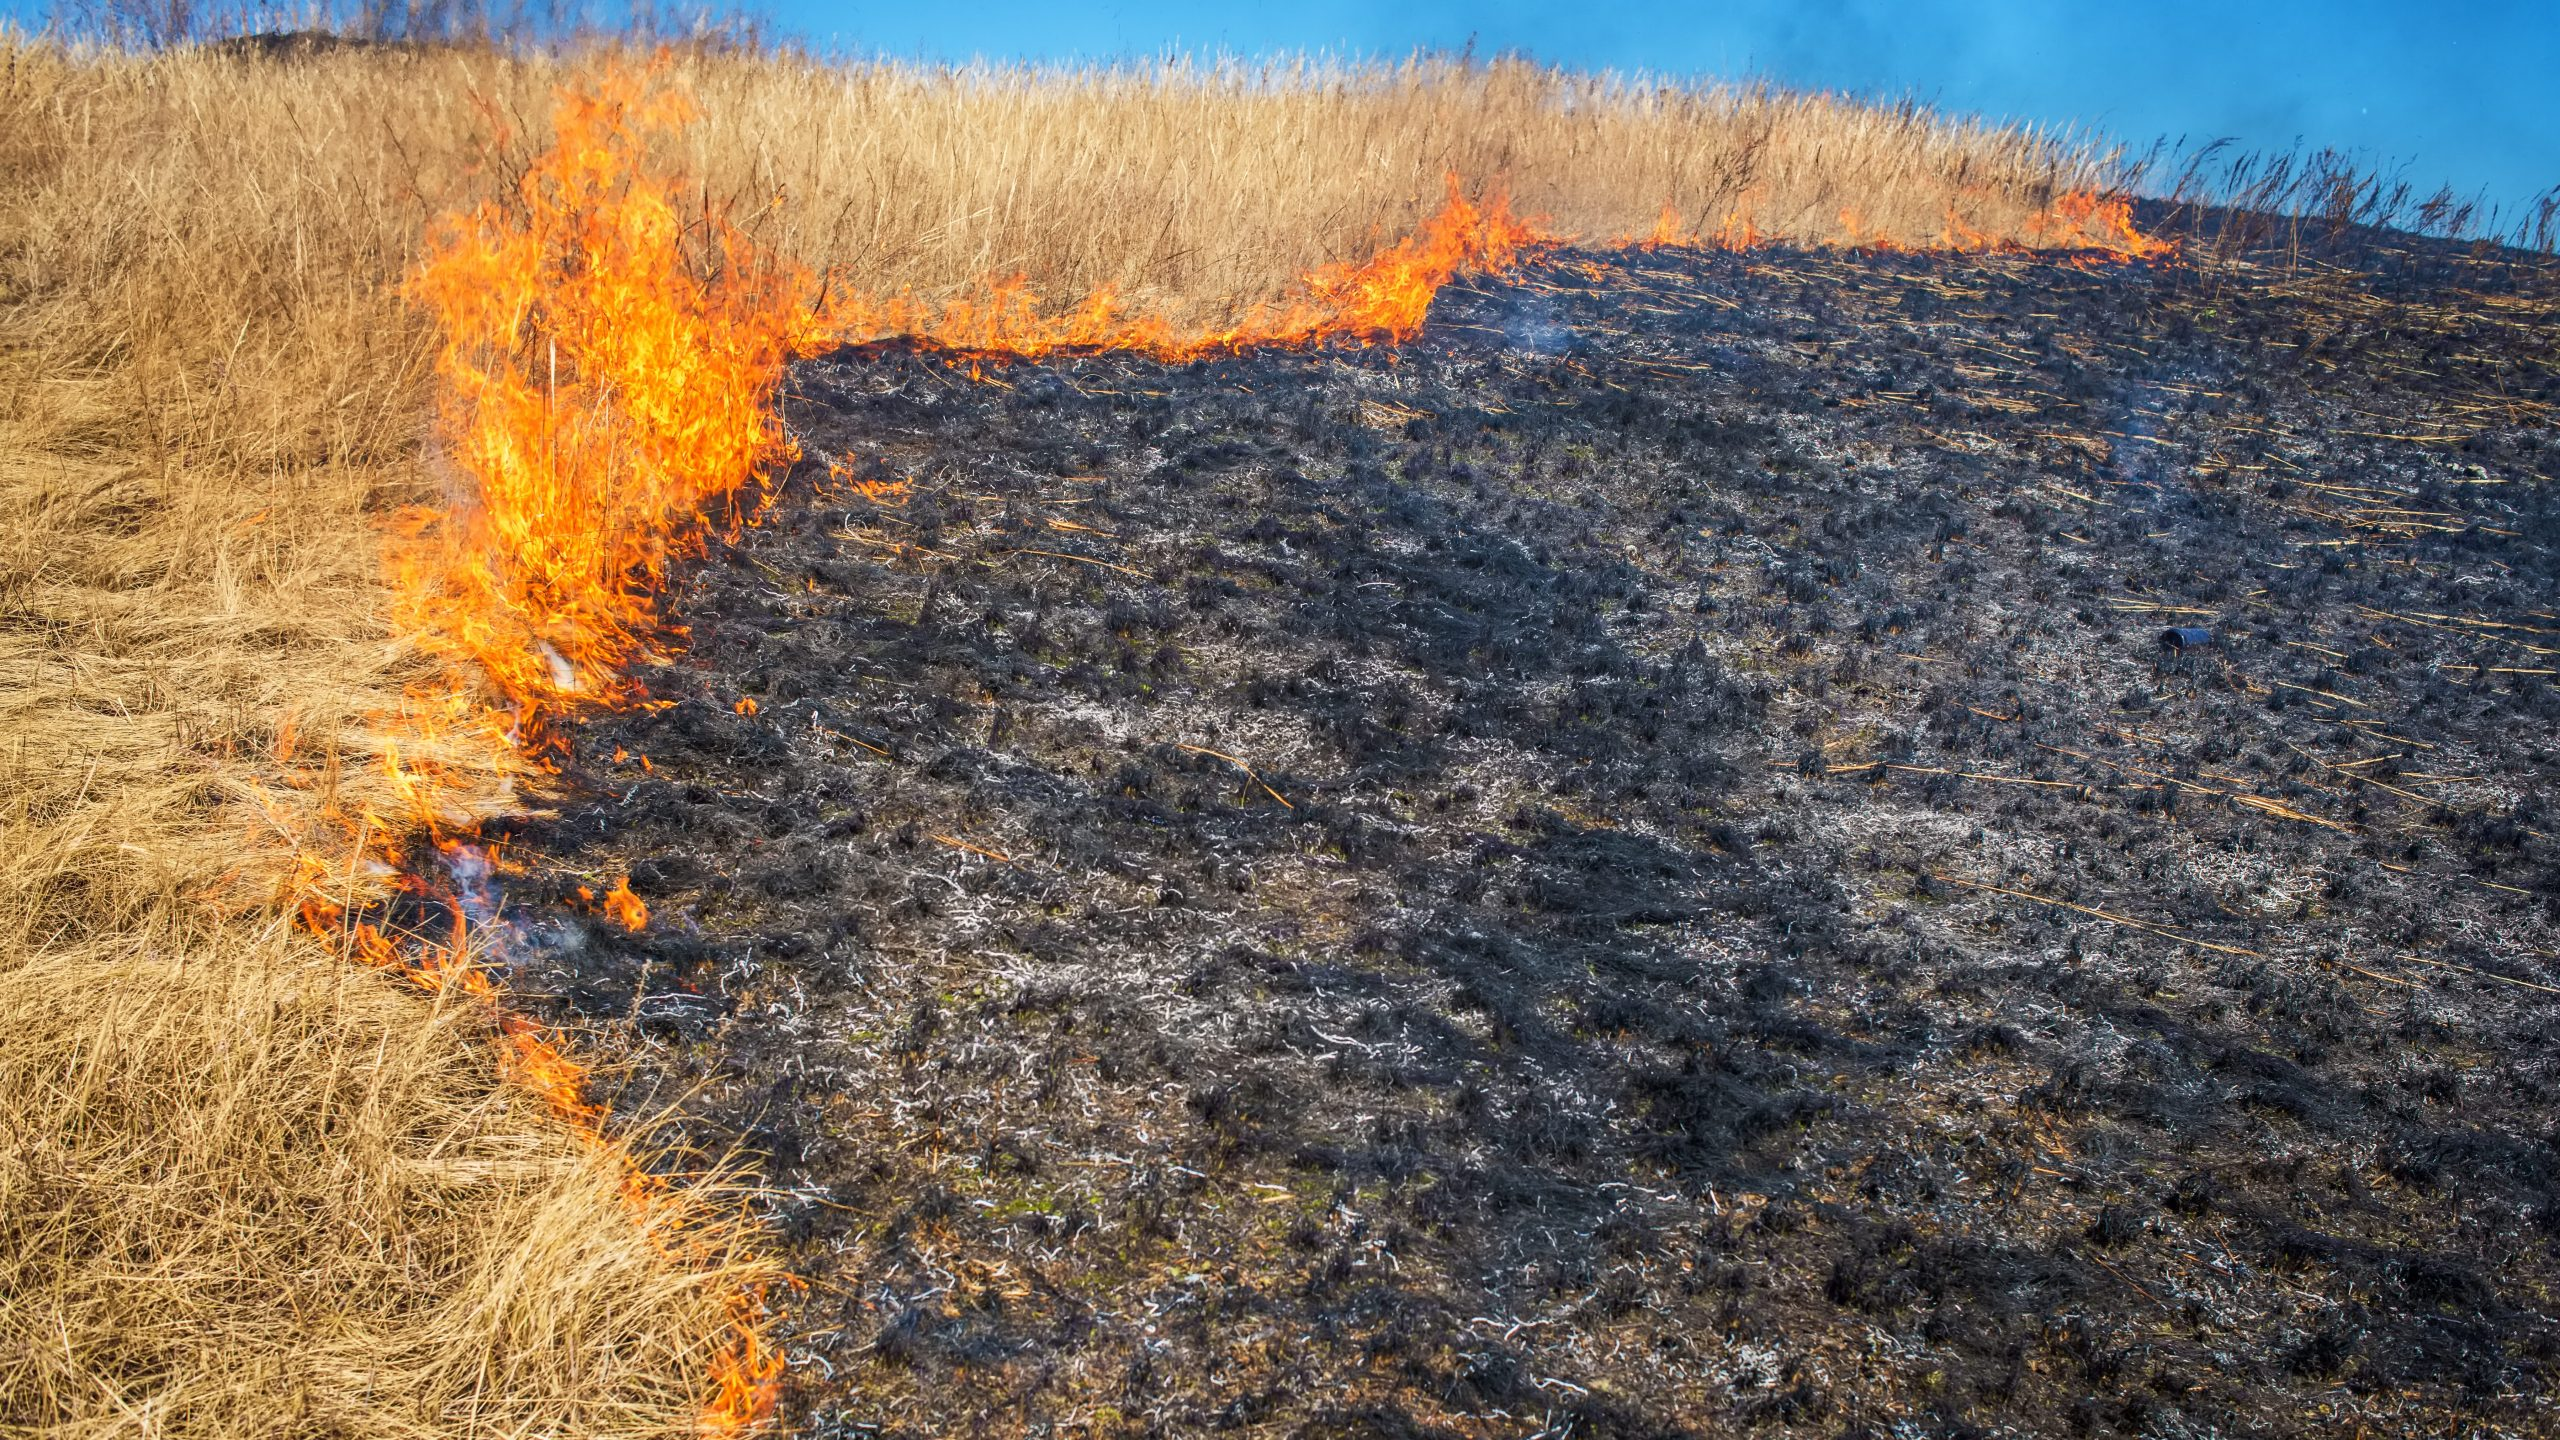 Grass fire picture